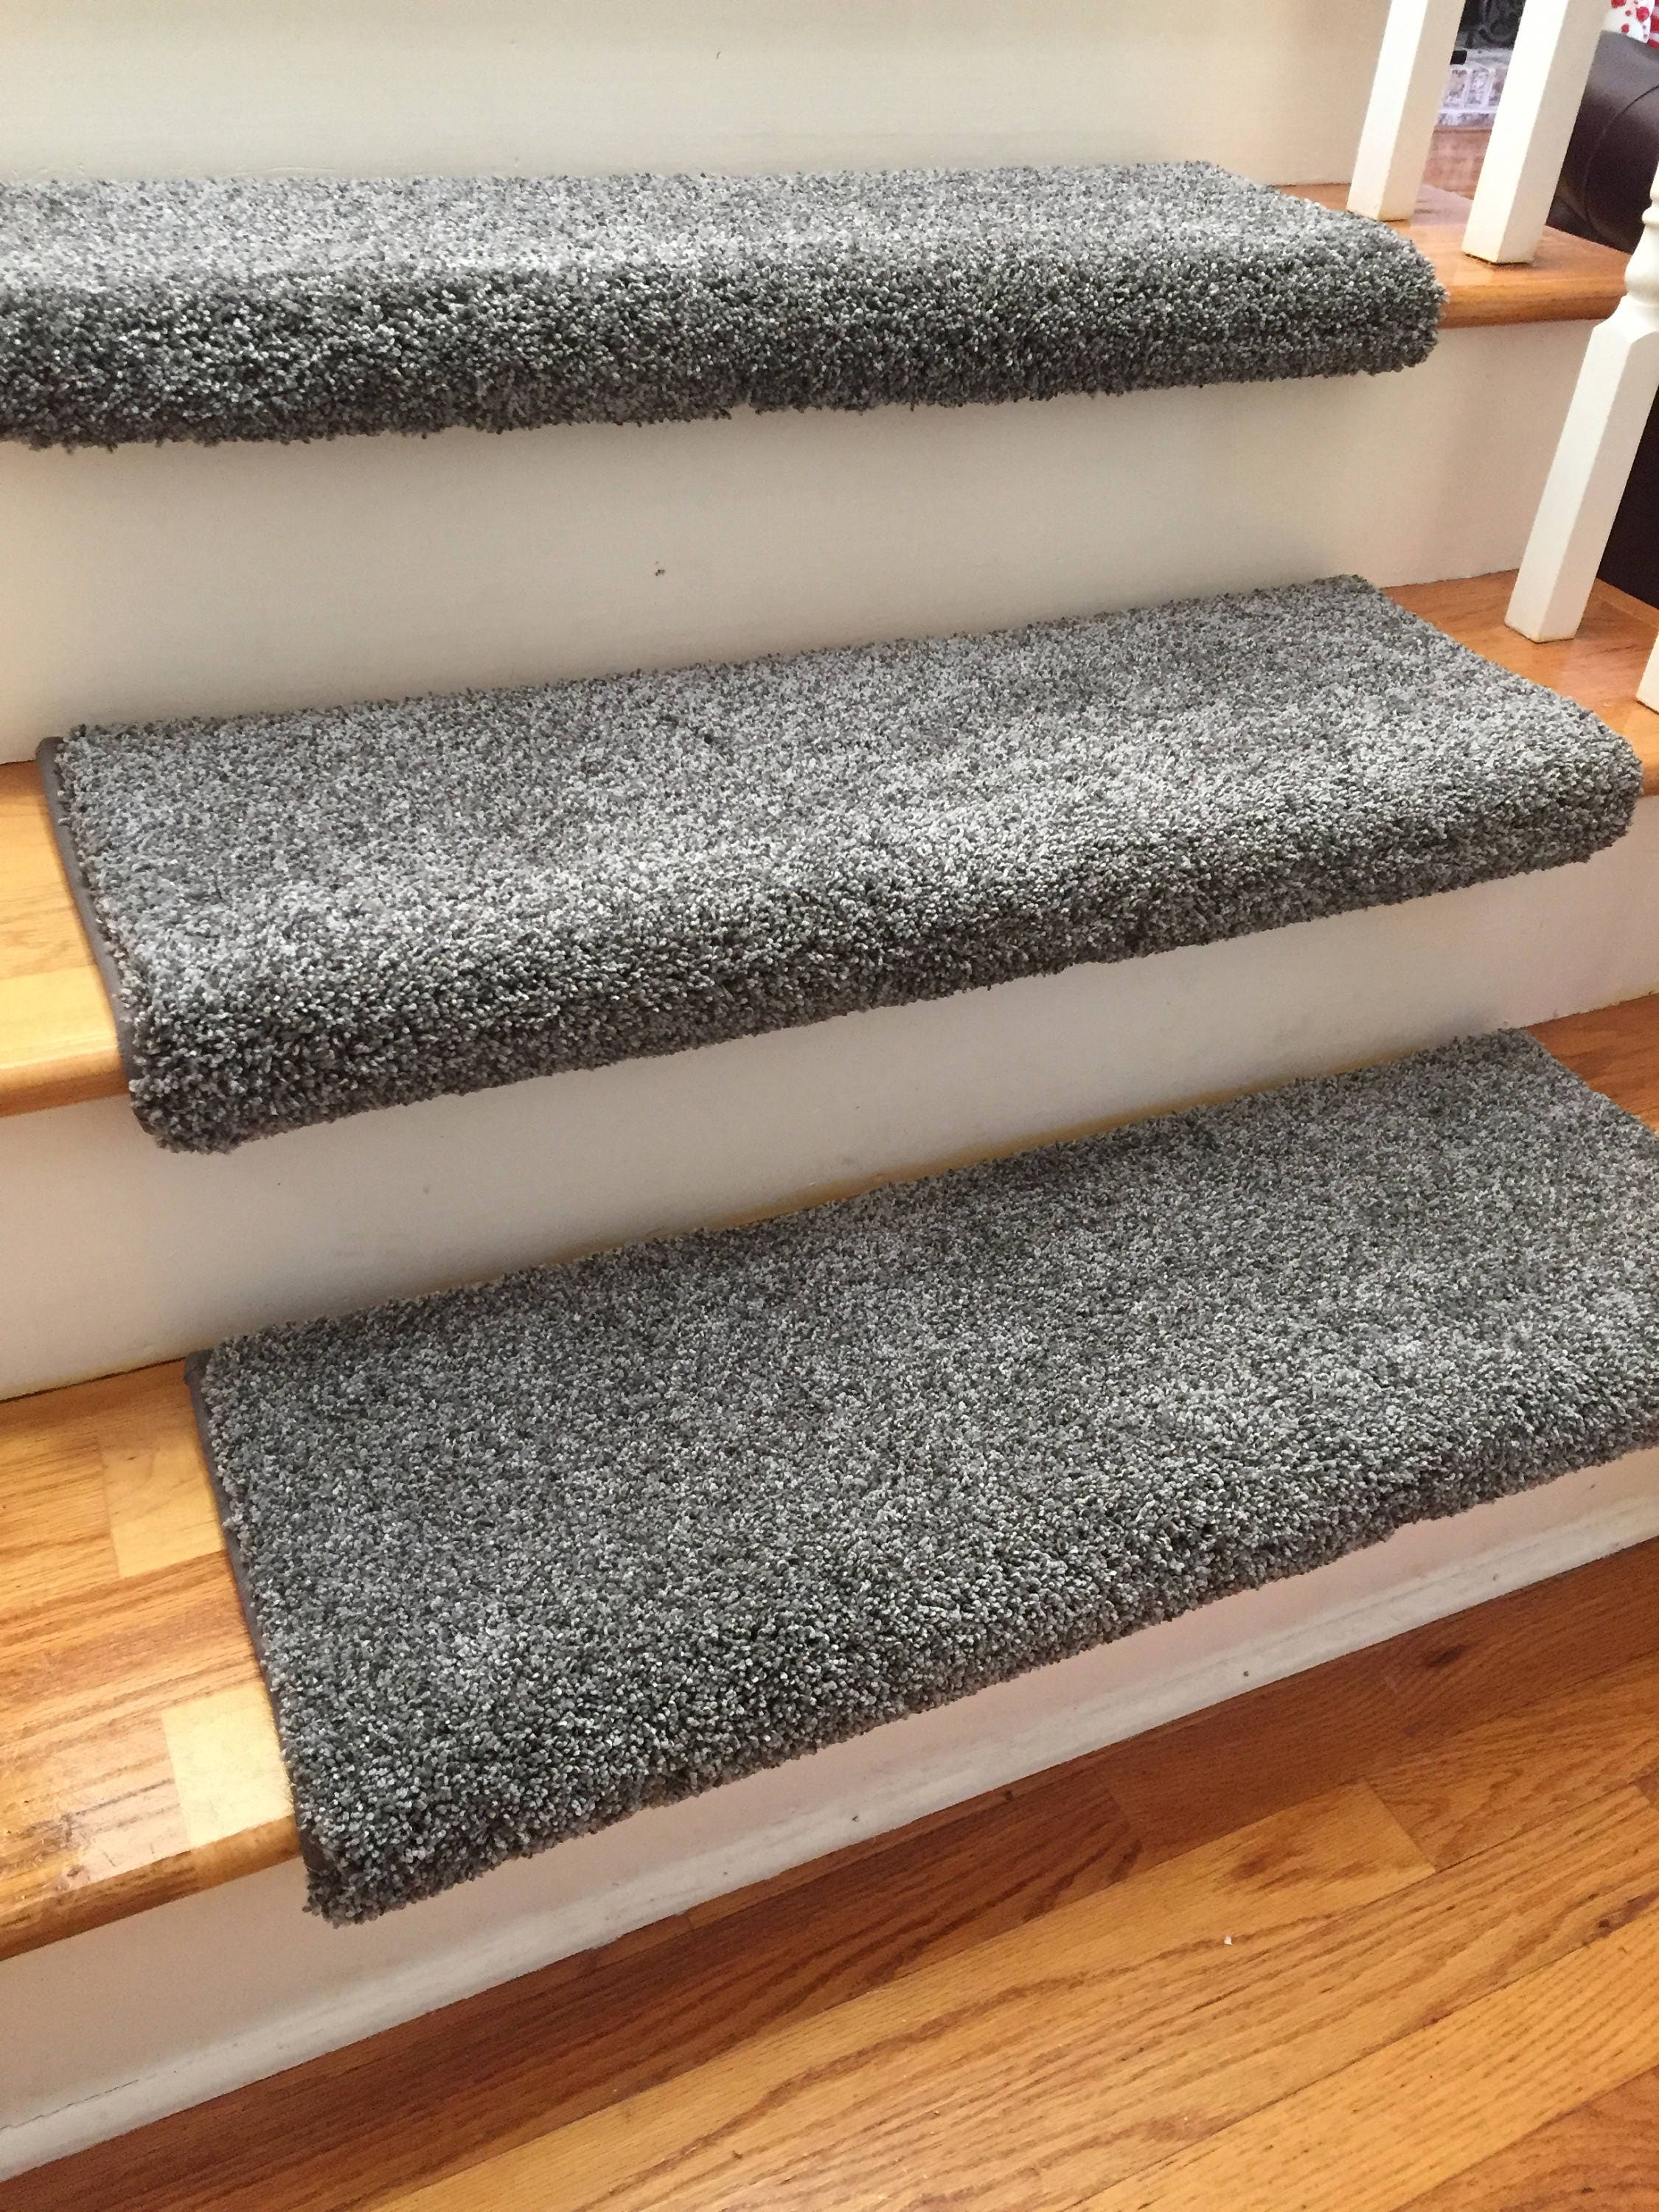 Dazzling Magma Grey Gray Plush Shag True Bullnose™ Carpet Stair Tread   For  Safety Comfort Dog Cat Pet (Sold Each)